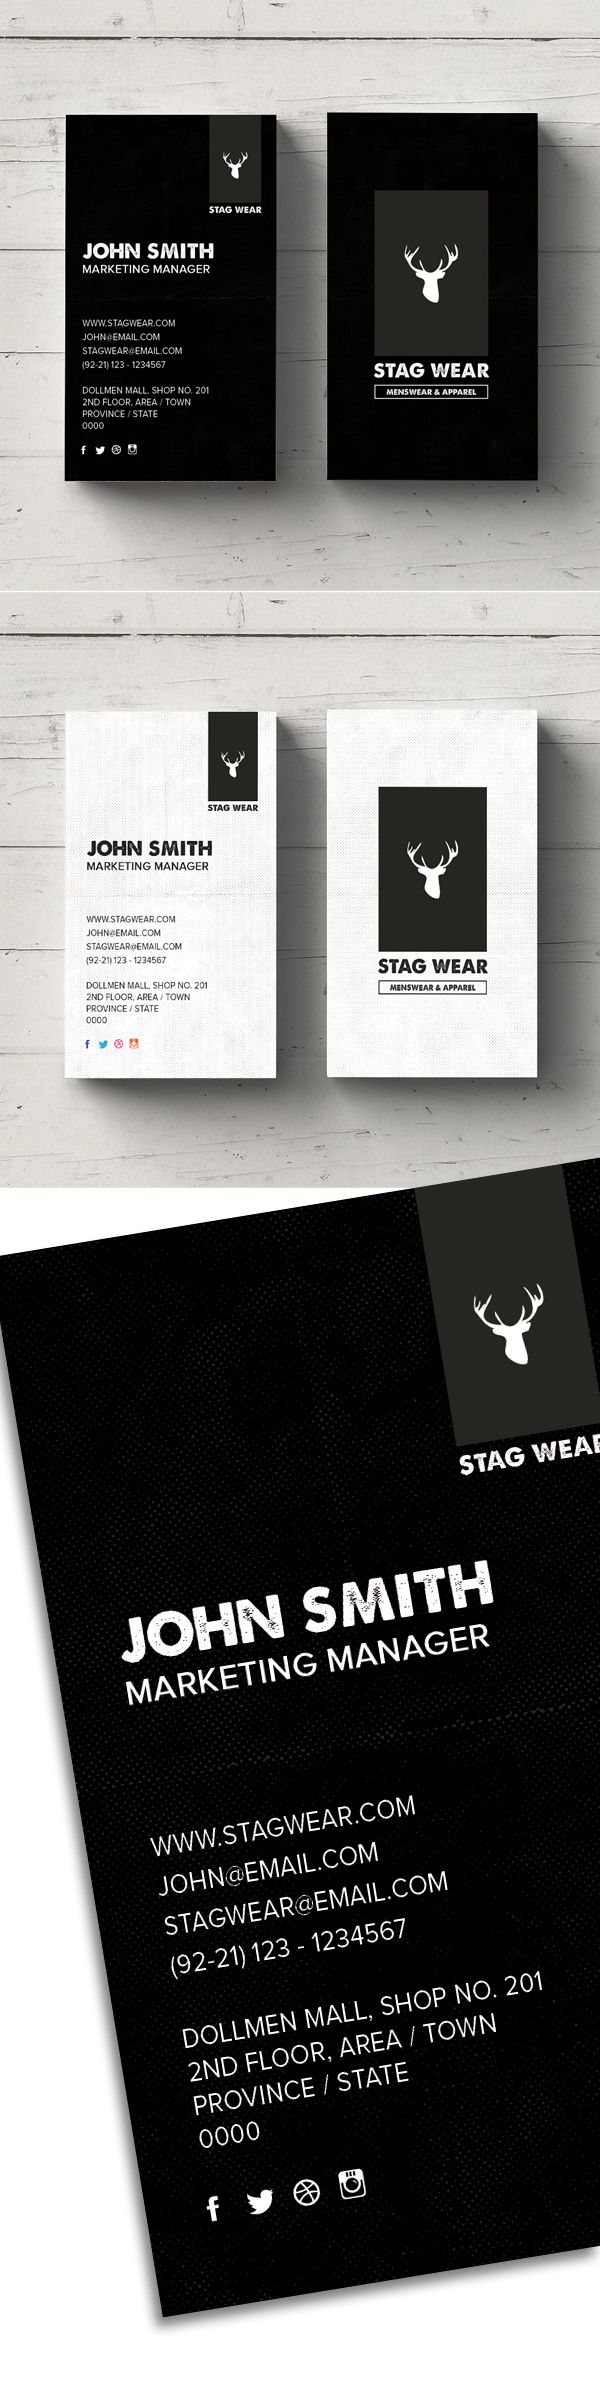 Free vertical business card psd template vertical black free vertical business card psd template vertical black businesscard freebusinesscard freepsdfiles freebie minimaldesign psdtemplate cheaphphosting Images